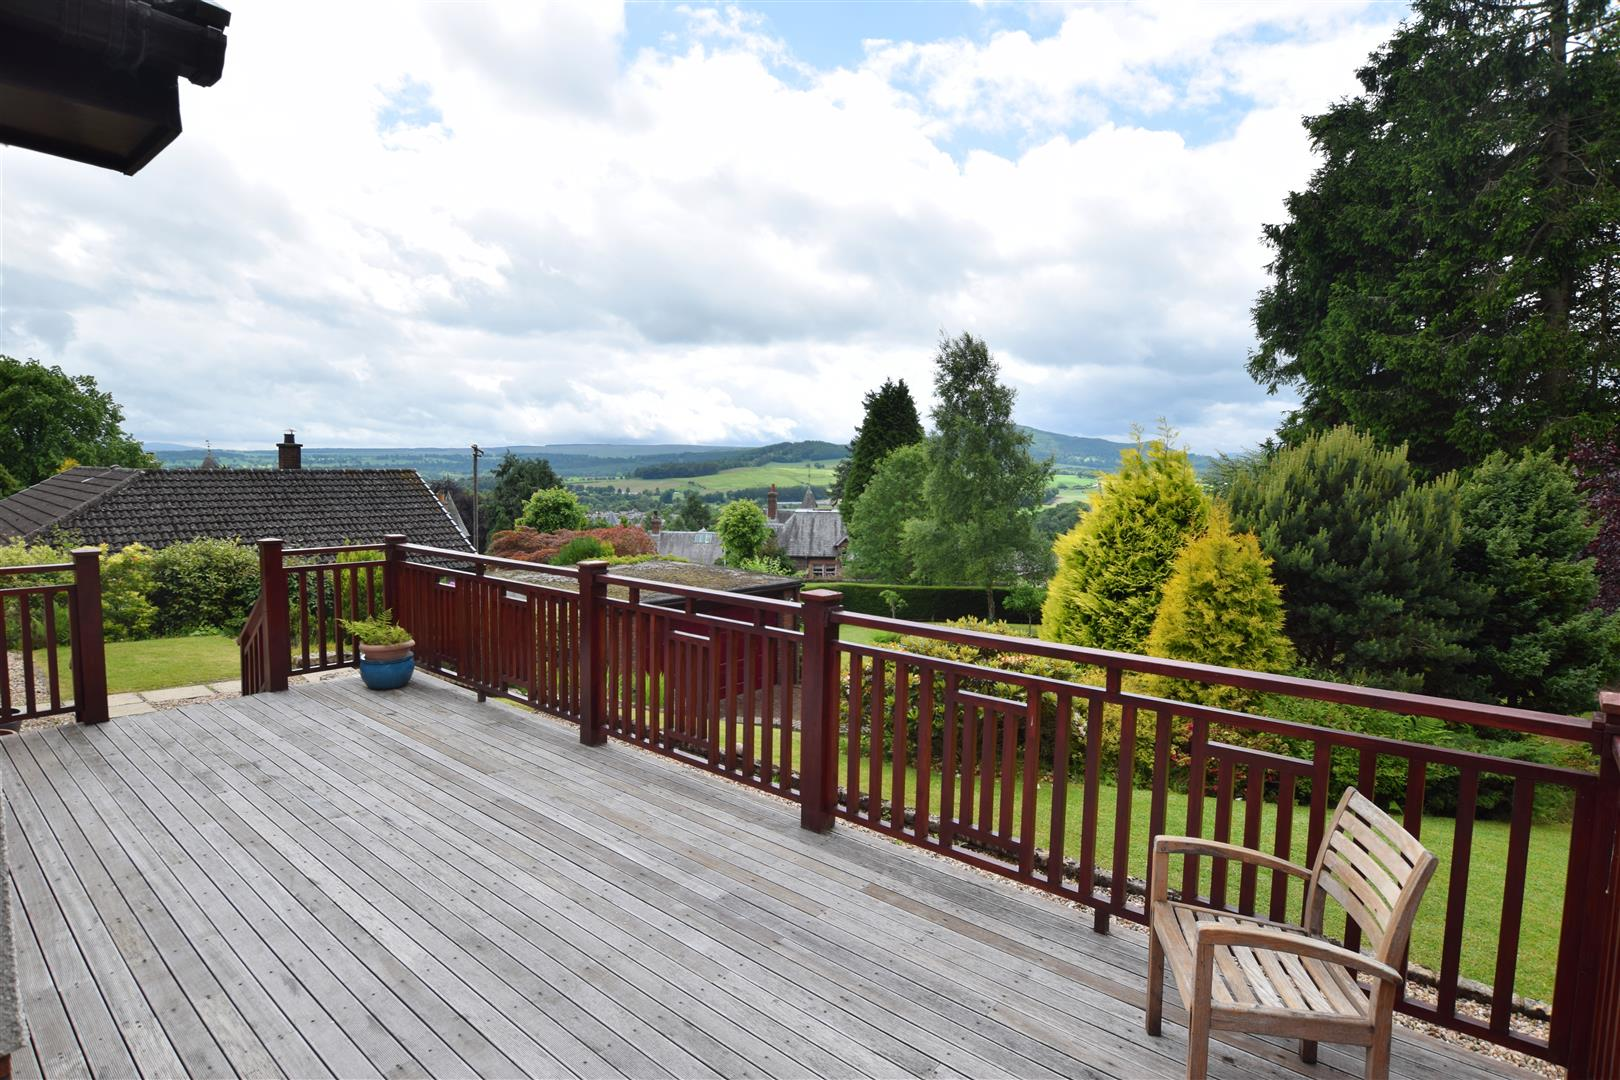 Pinewood, Ancaster Road, Crieff, Perthshire, PH7 4AL, UK